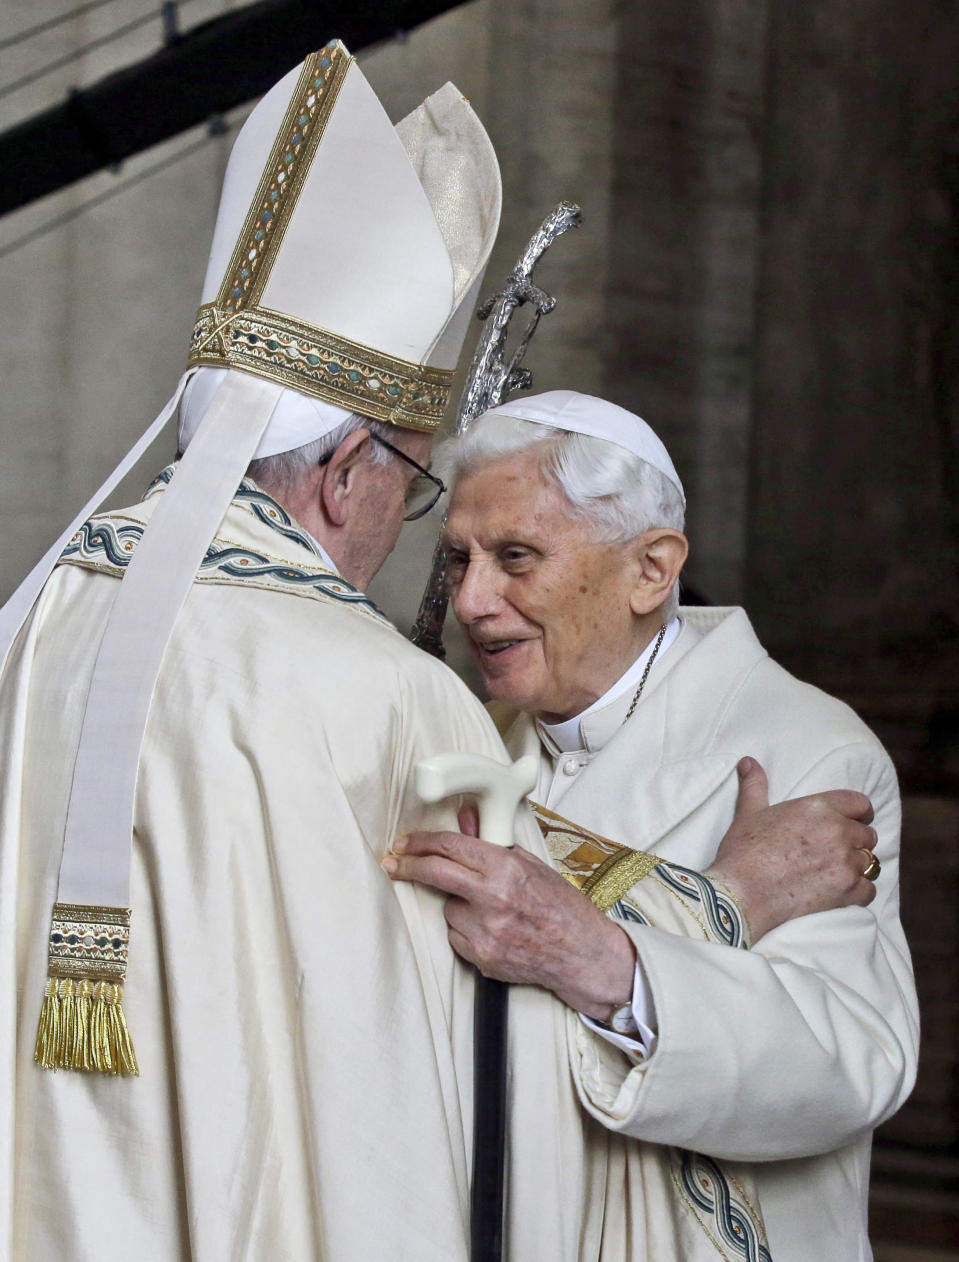 """FILE - In this Dec. 8, 2015 file photo, Emeritus Pope Benedict XVI, right, hugs Pope Francis inside St. Peter's Basilica during the ceremony marking the start of the Holy Year, at the Vatican. Emeritus Pope Benedict XVI has marked the eighth anniversary of his historic resignation by insisting in an interview published in Corriere della Sera Monday, March 1, 2021, that he stepped down knowingly and that """"there is only one pope"""" _ Francis. (AP Photo/Gregorio Borgia, file)"""